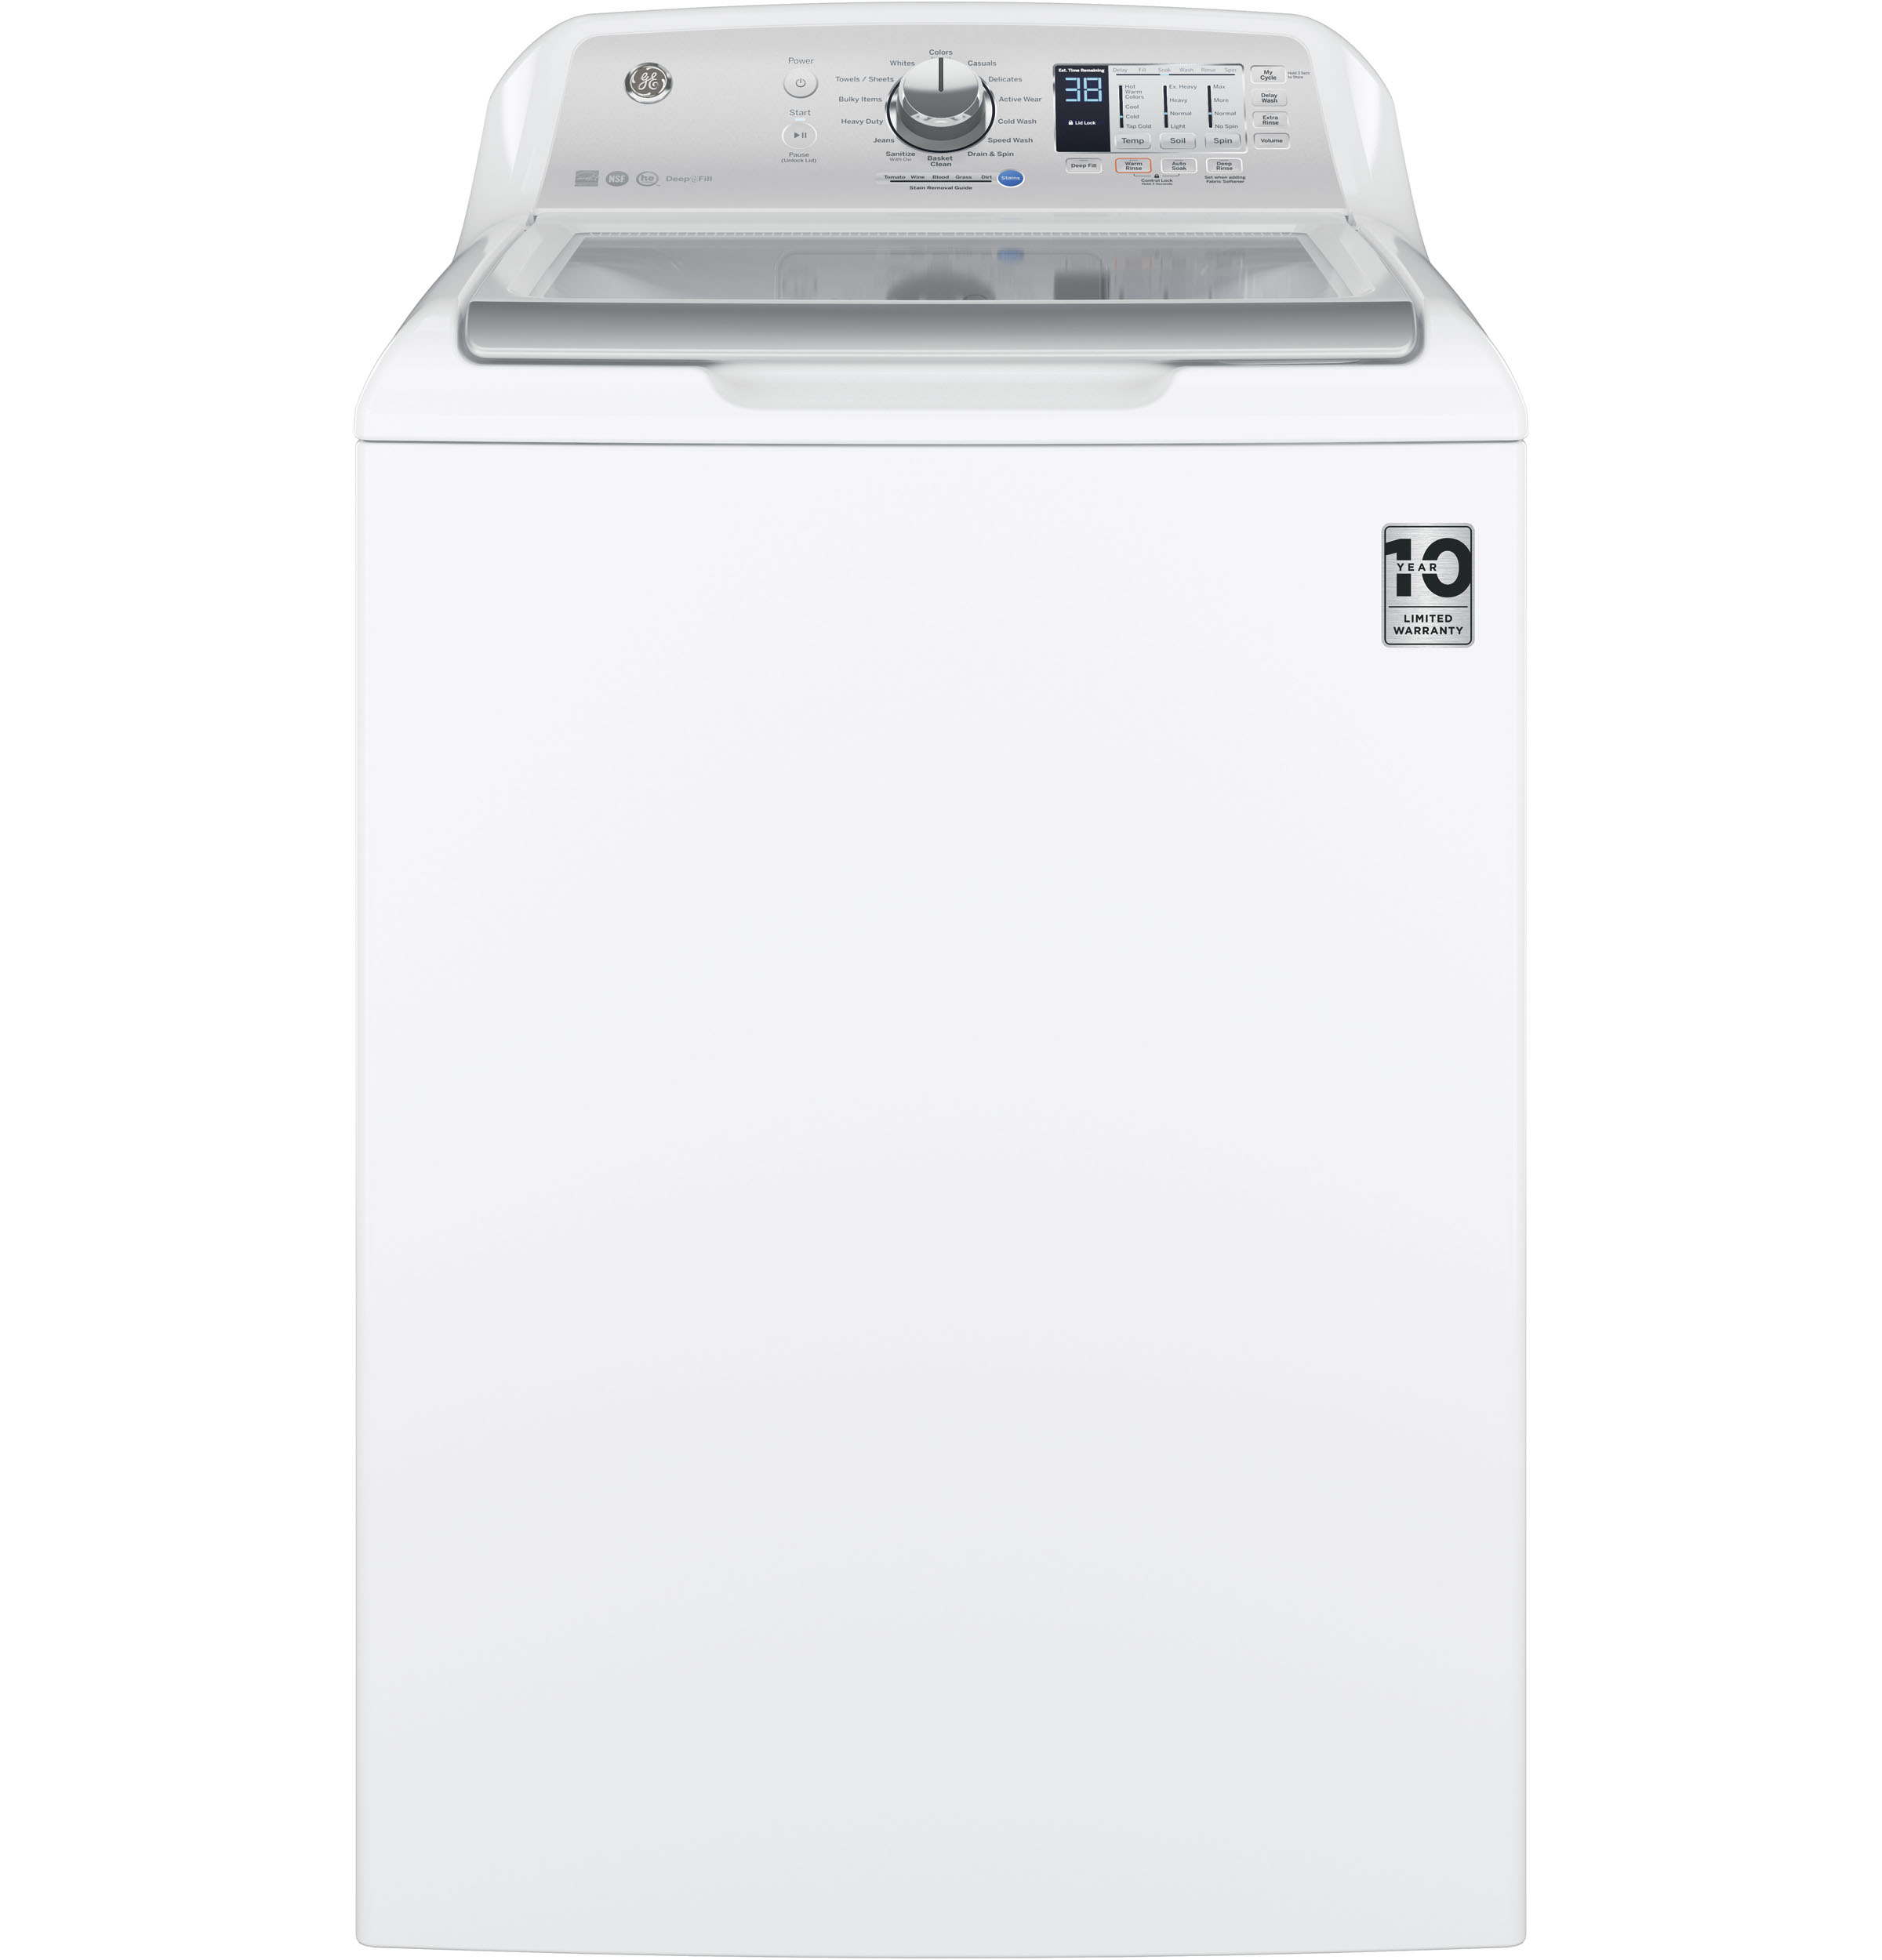 Model: GTW680BSJWS | GE® 4.6  cu. ft. Capacity  Washer with Stainless Steel Basket